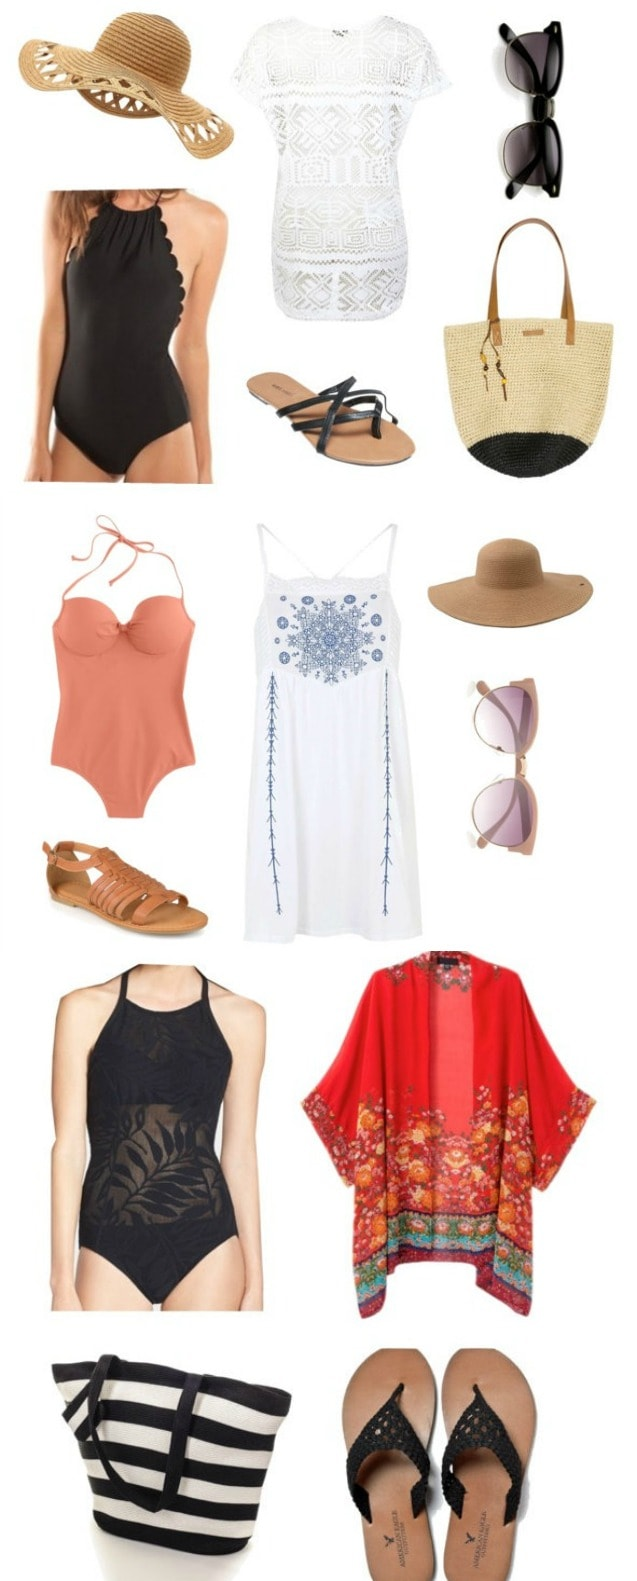 Lots of cute and trendy ways to cover up this summer by the pool or at the beach! See it on { lilluna.com }